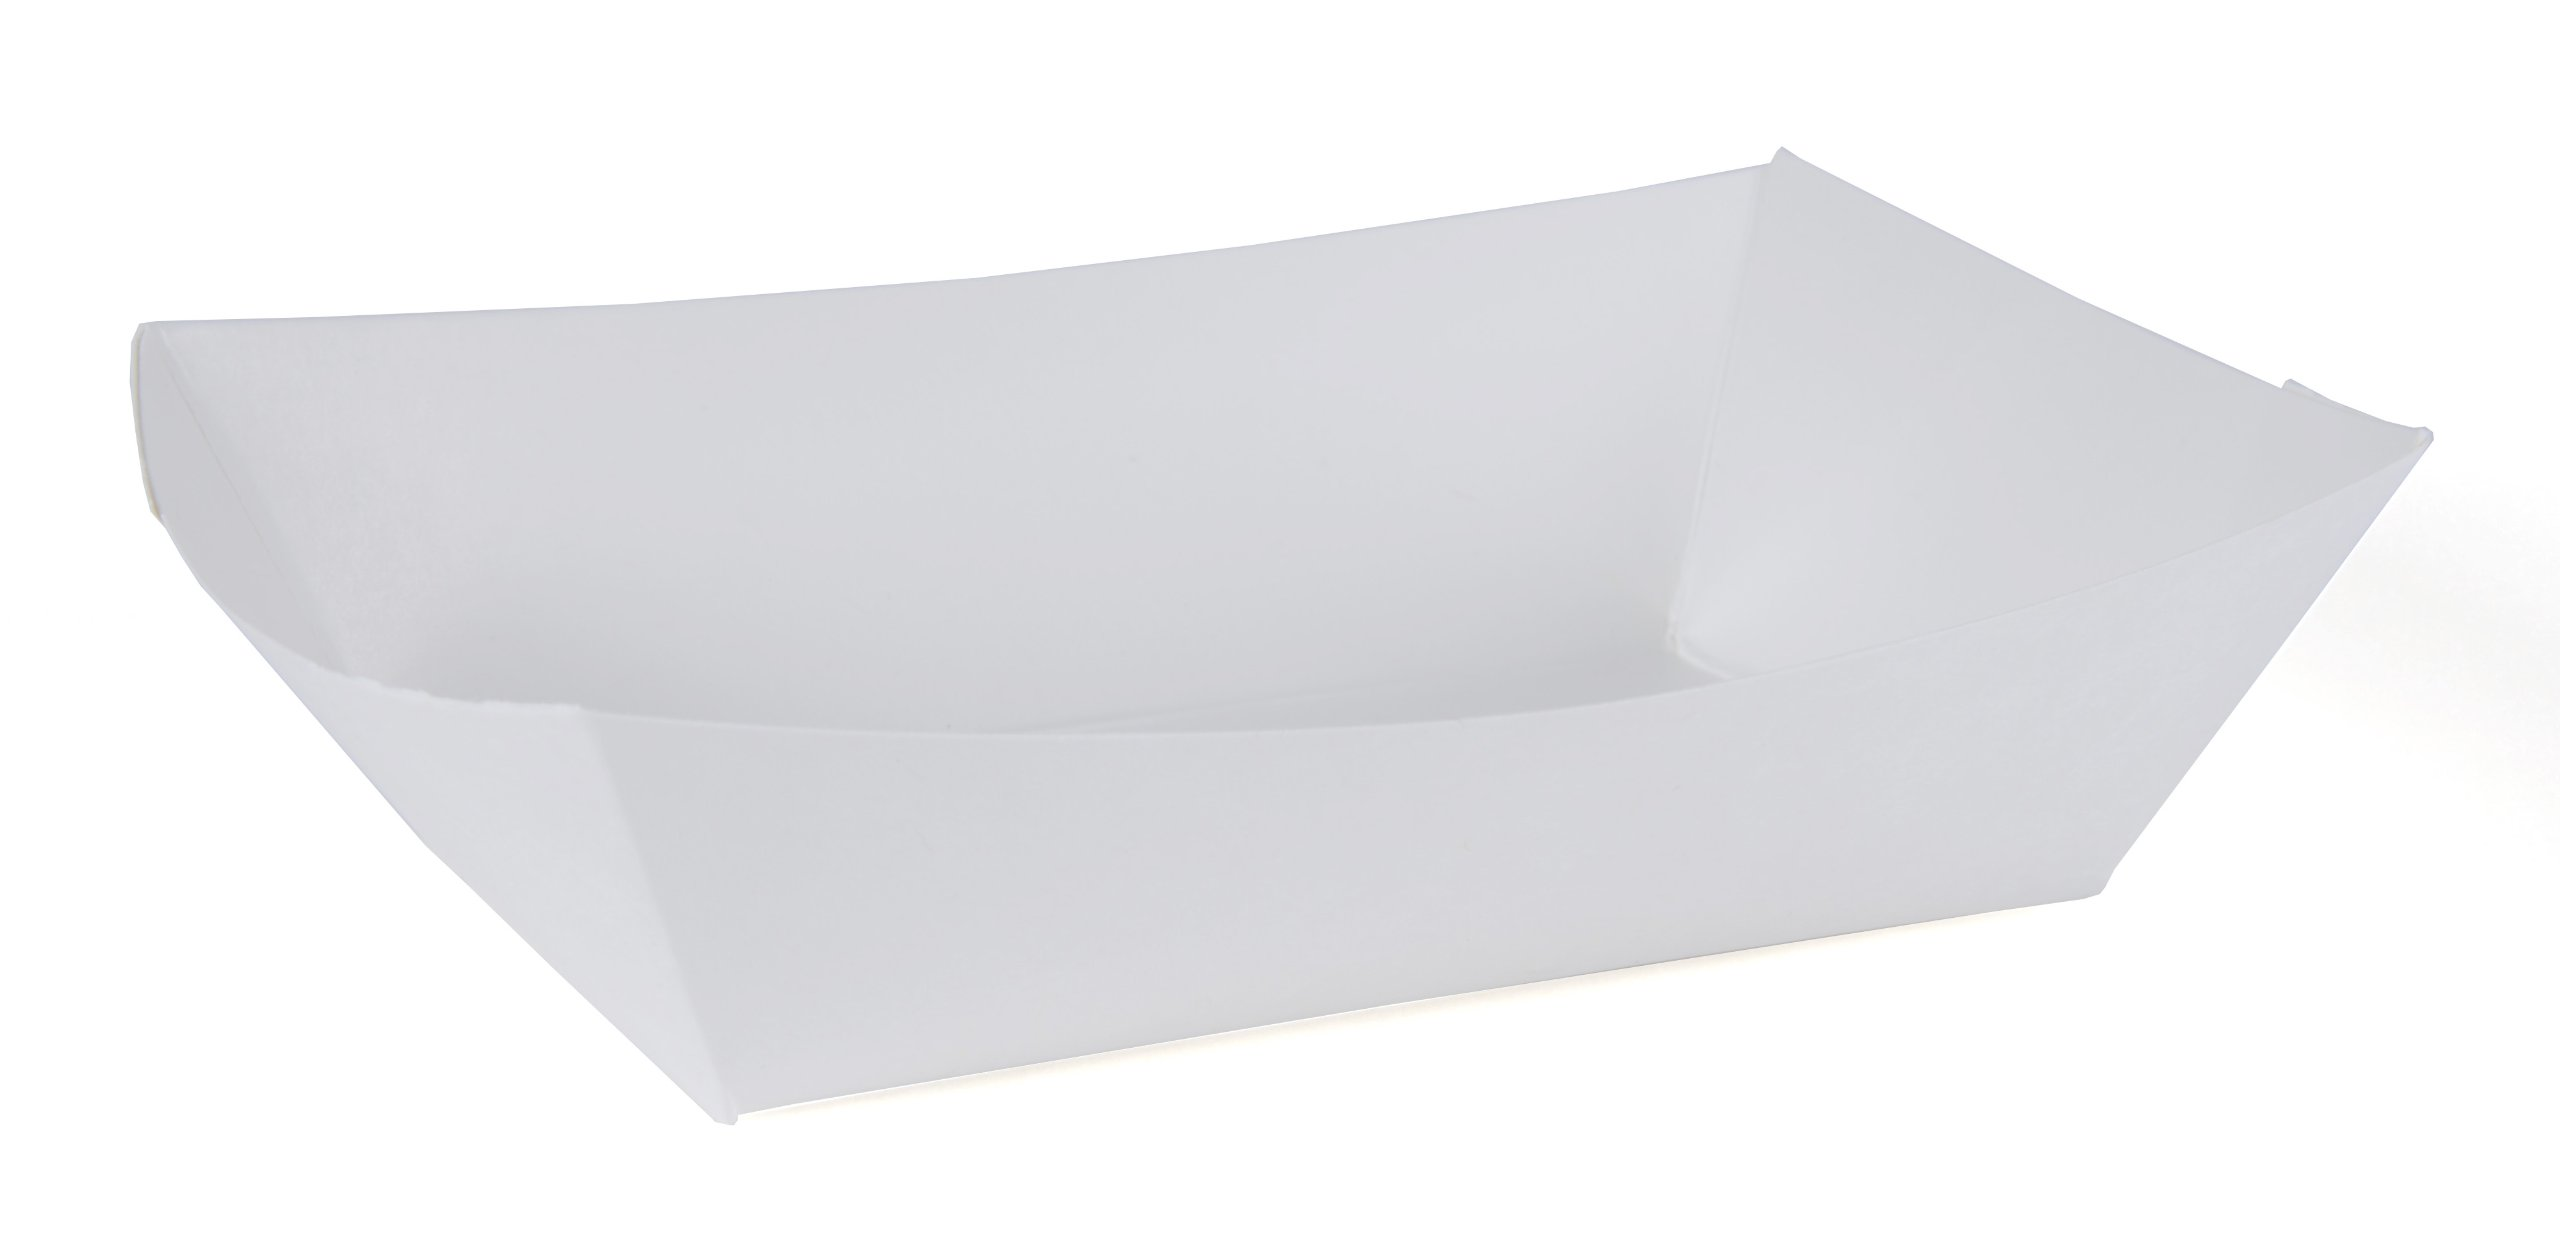 Southern Champion Tray 0554 #200 Paperboard Food Tray / Boat / Bowl, 2 lb Capacity, White (Pack of 1000) by Southern Champion Tray (Image #1)